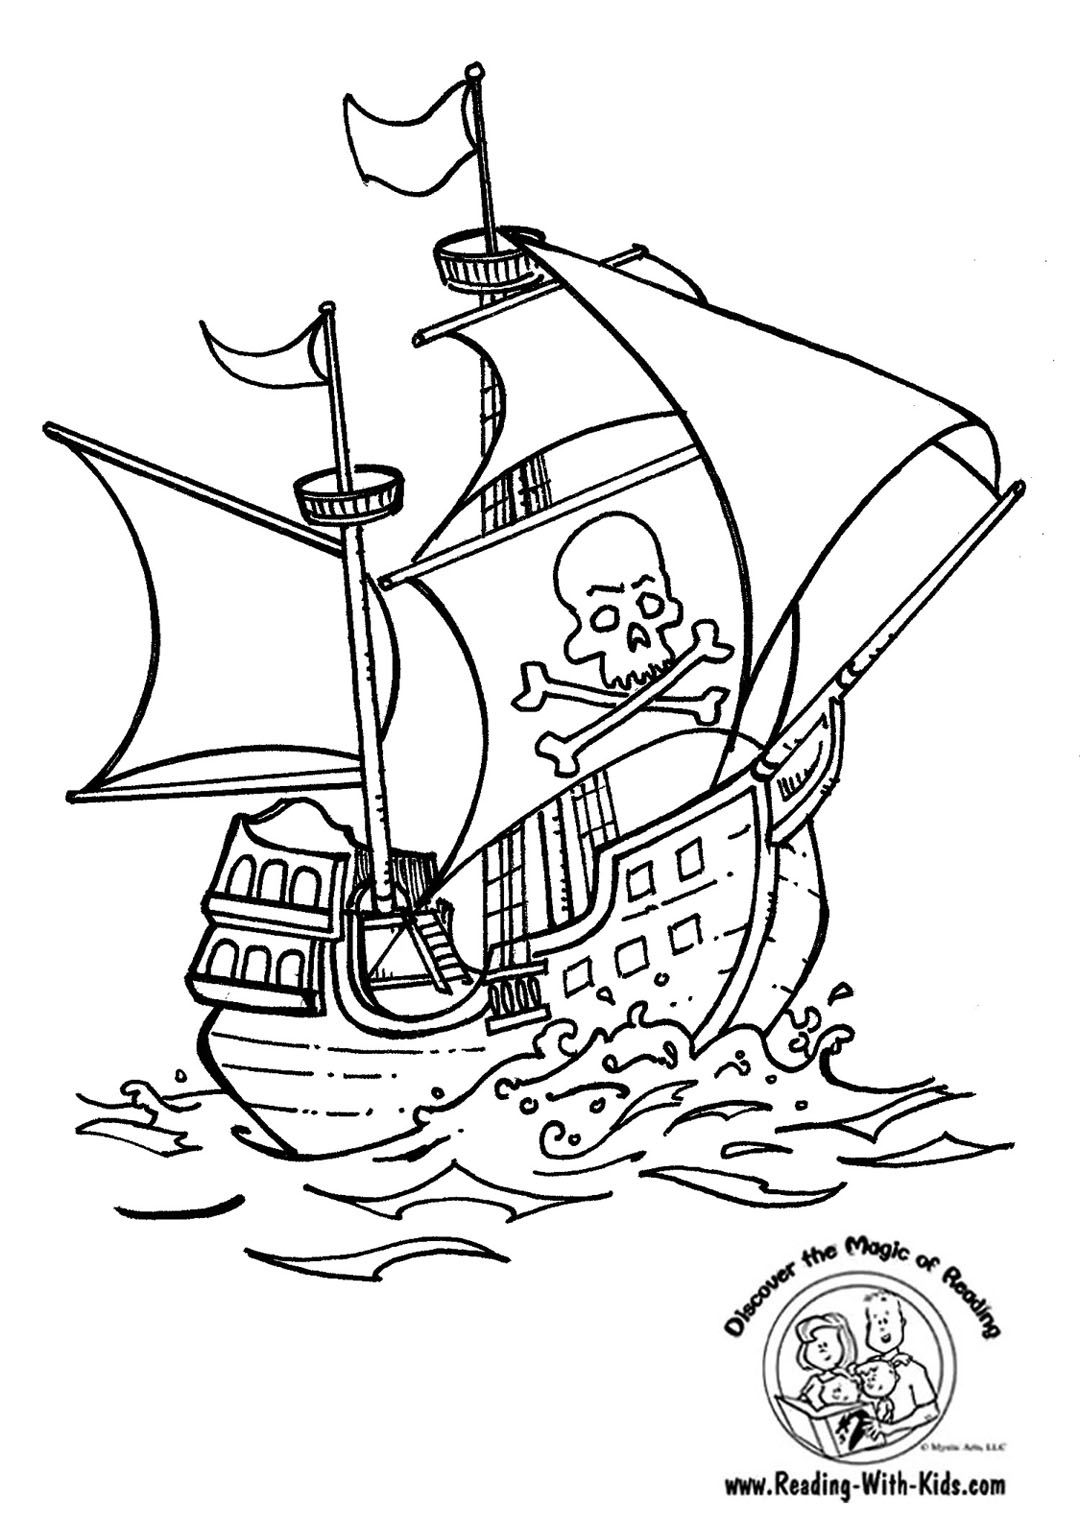 Http Www Reading With Kids Com Images Pirate Ship Coloring Page Jpg